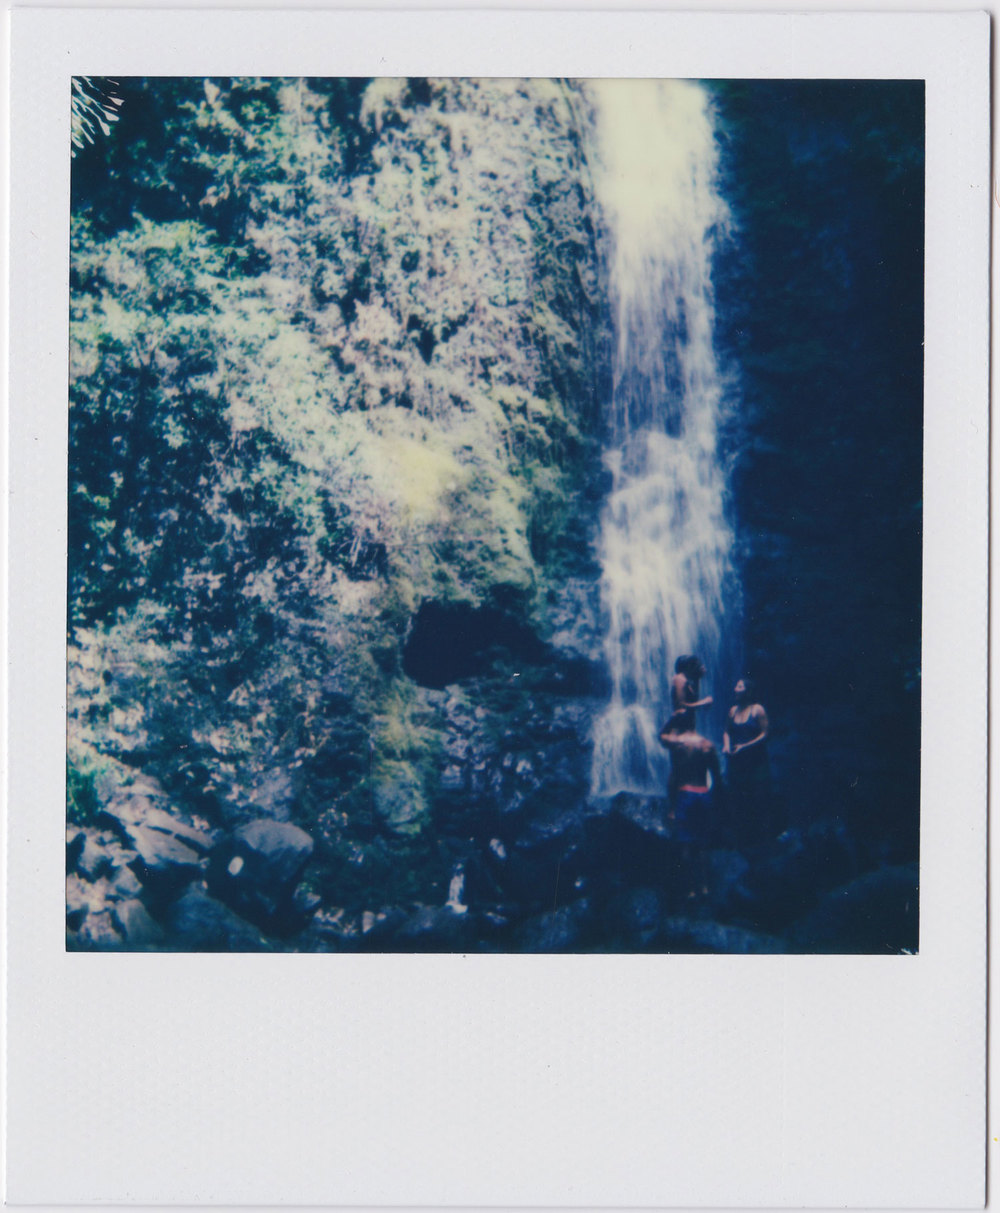 whoiscx_christina_choi_photography_polaroid_film_hawaii_waterfall_10.jpg